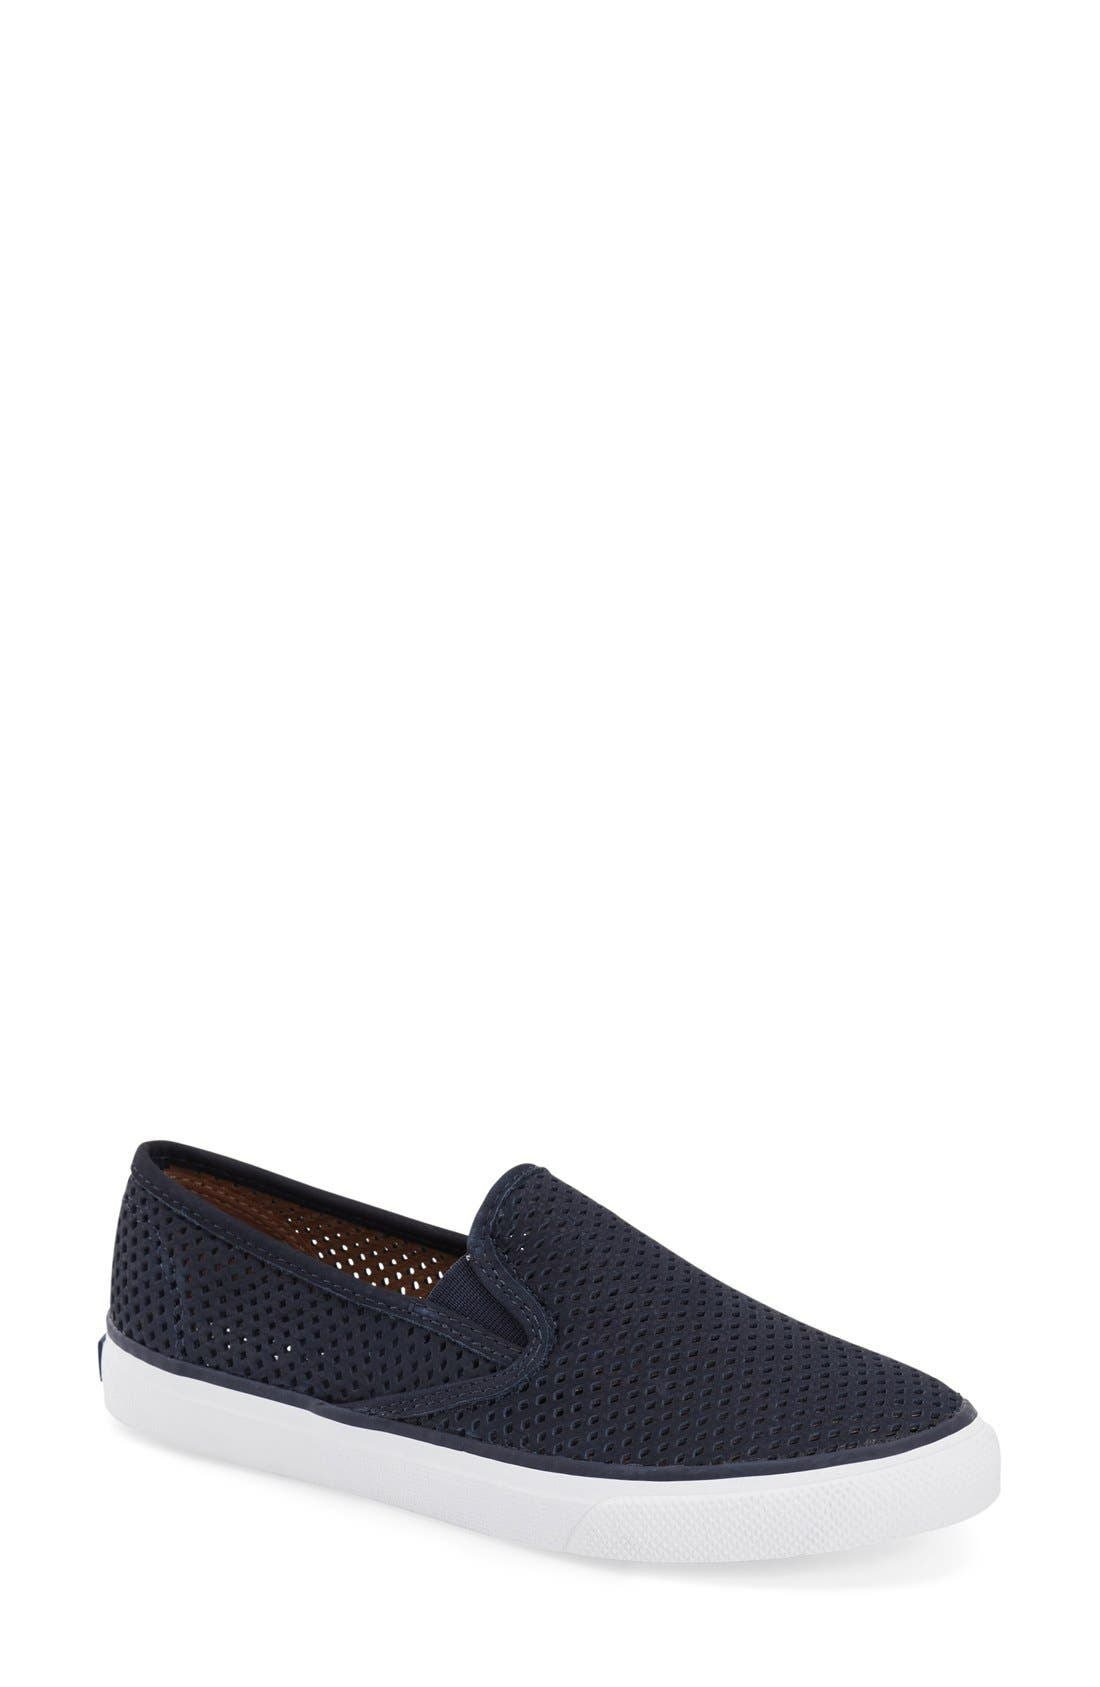 Alternate Image 1 Selected - Sperry 'Seaside' Perforated Slip-On Sneaker (Women)